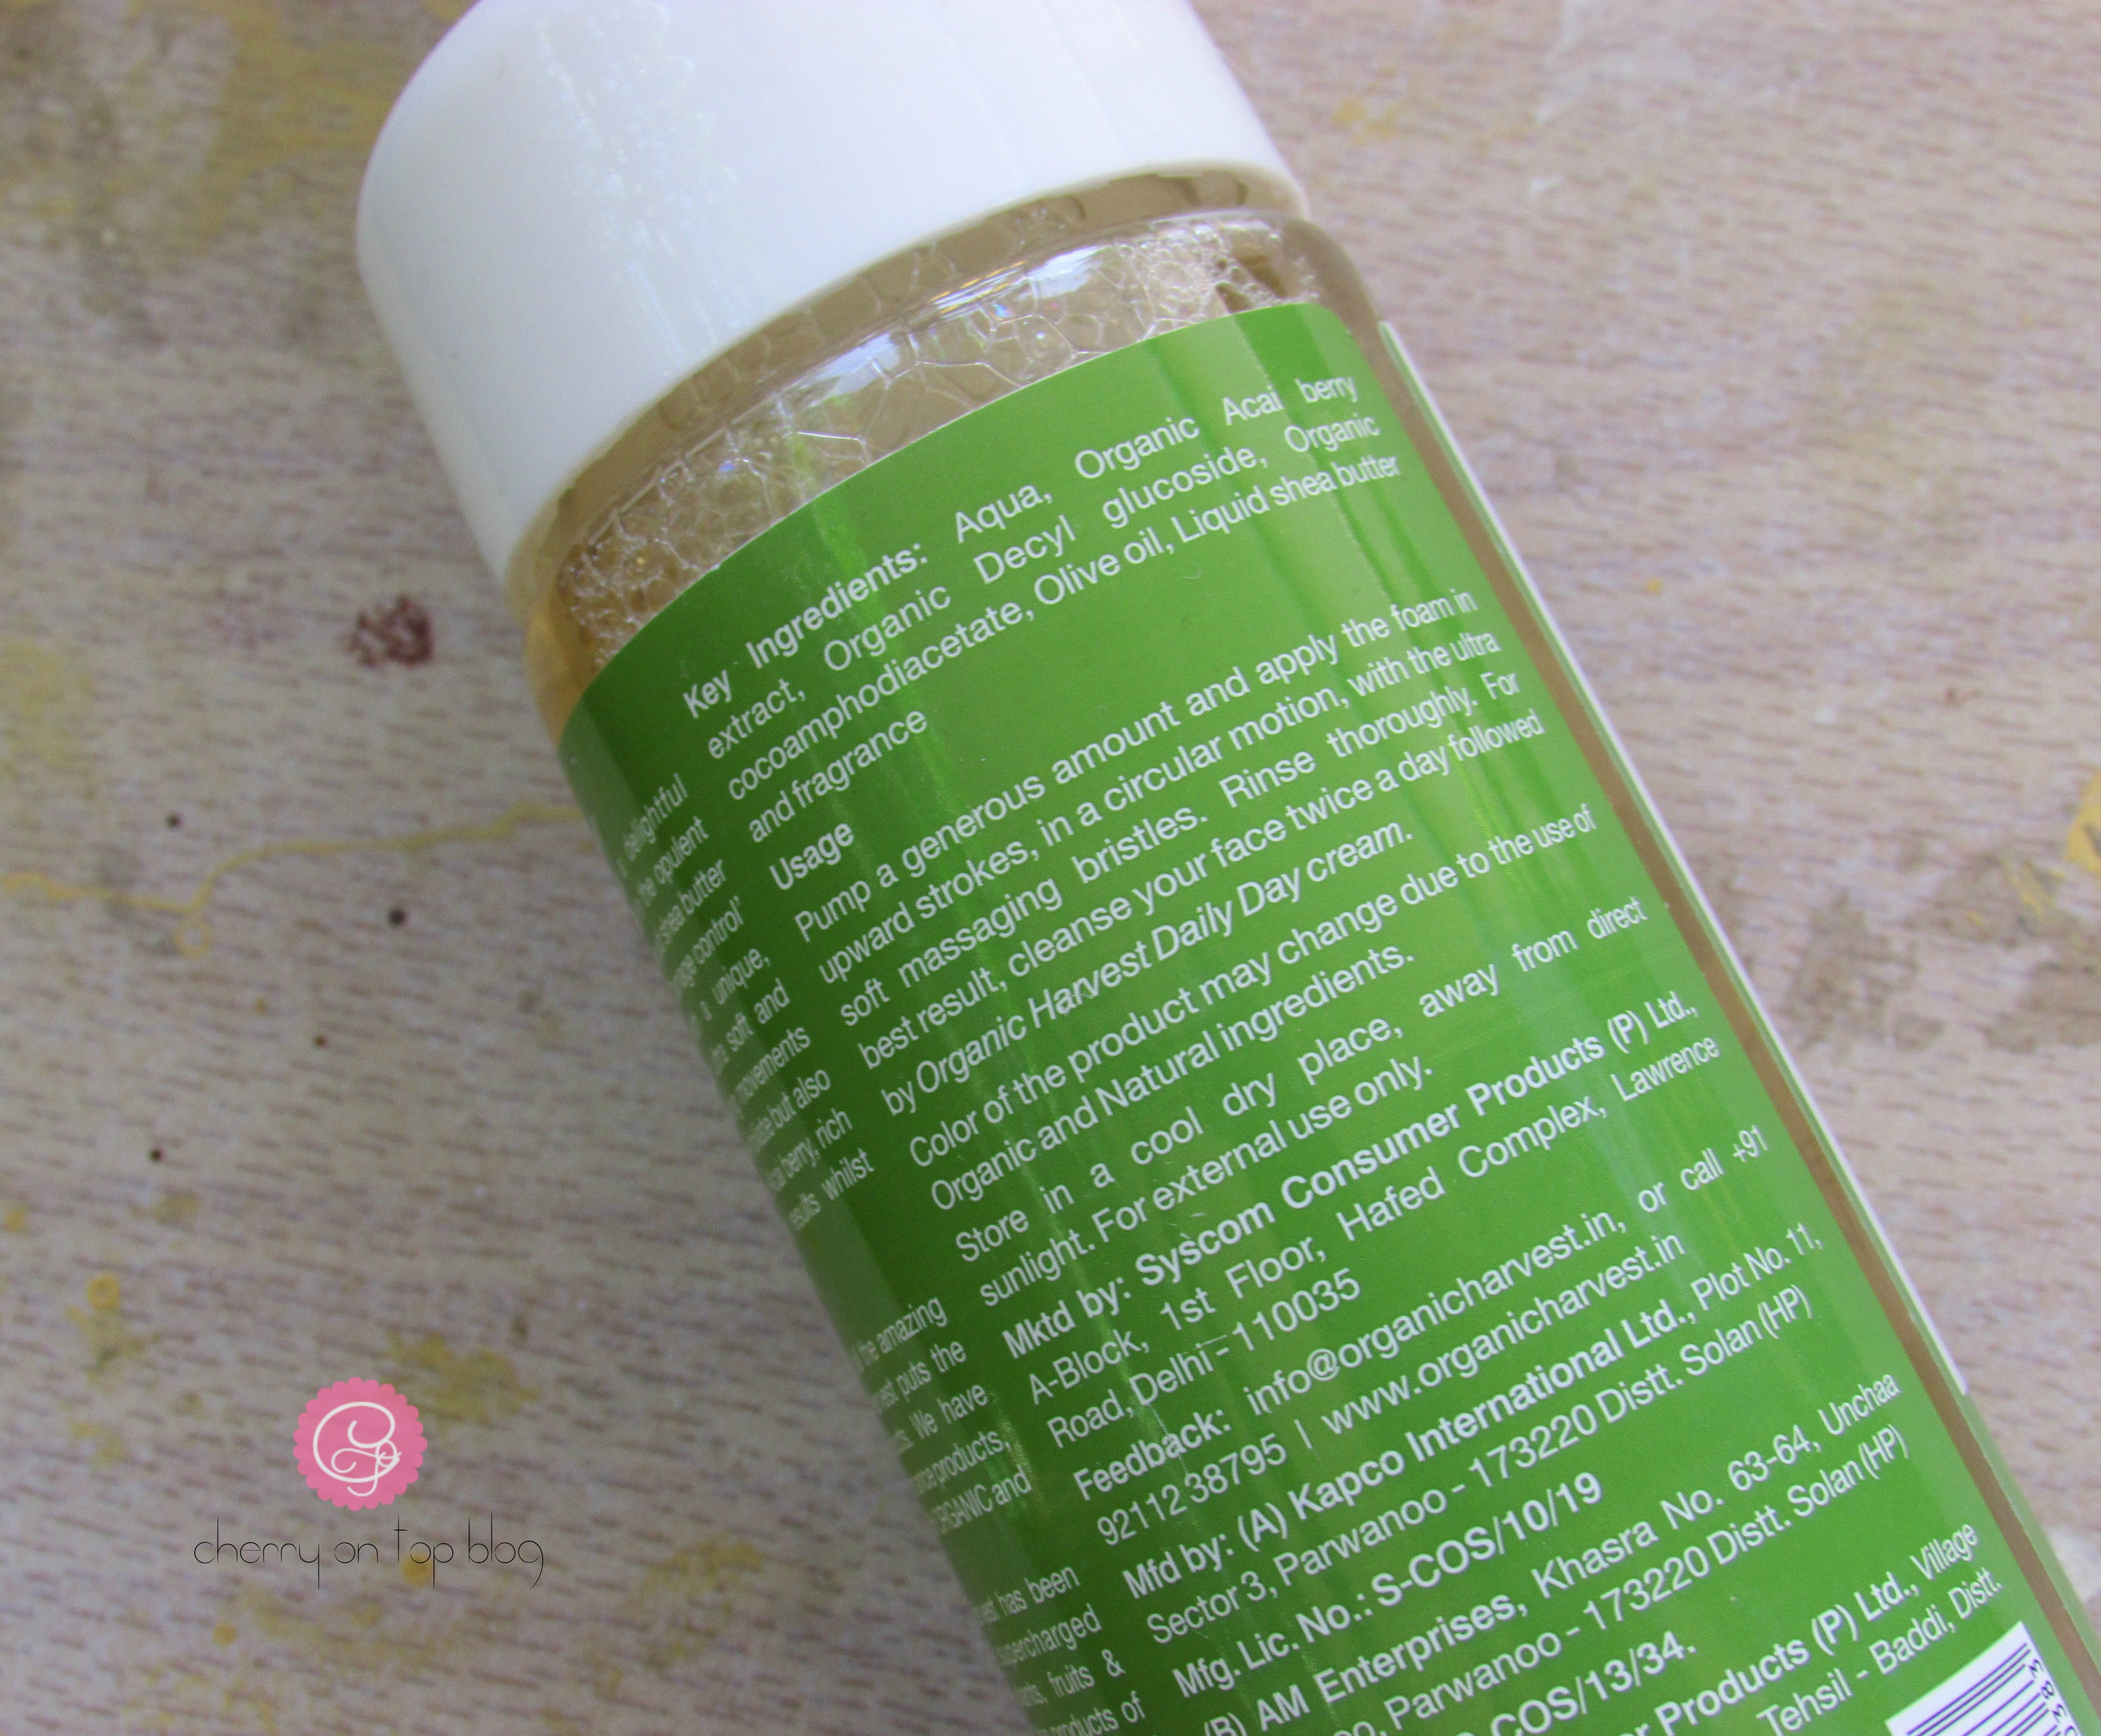 Organic Harvest Masseuscious Damage Control Cleanser Review  Cherry On Top